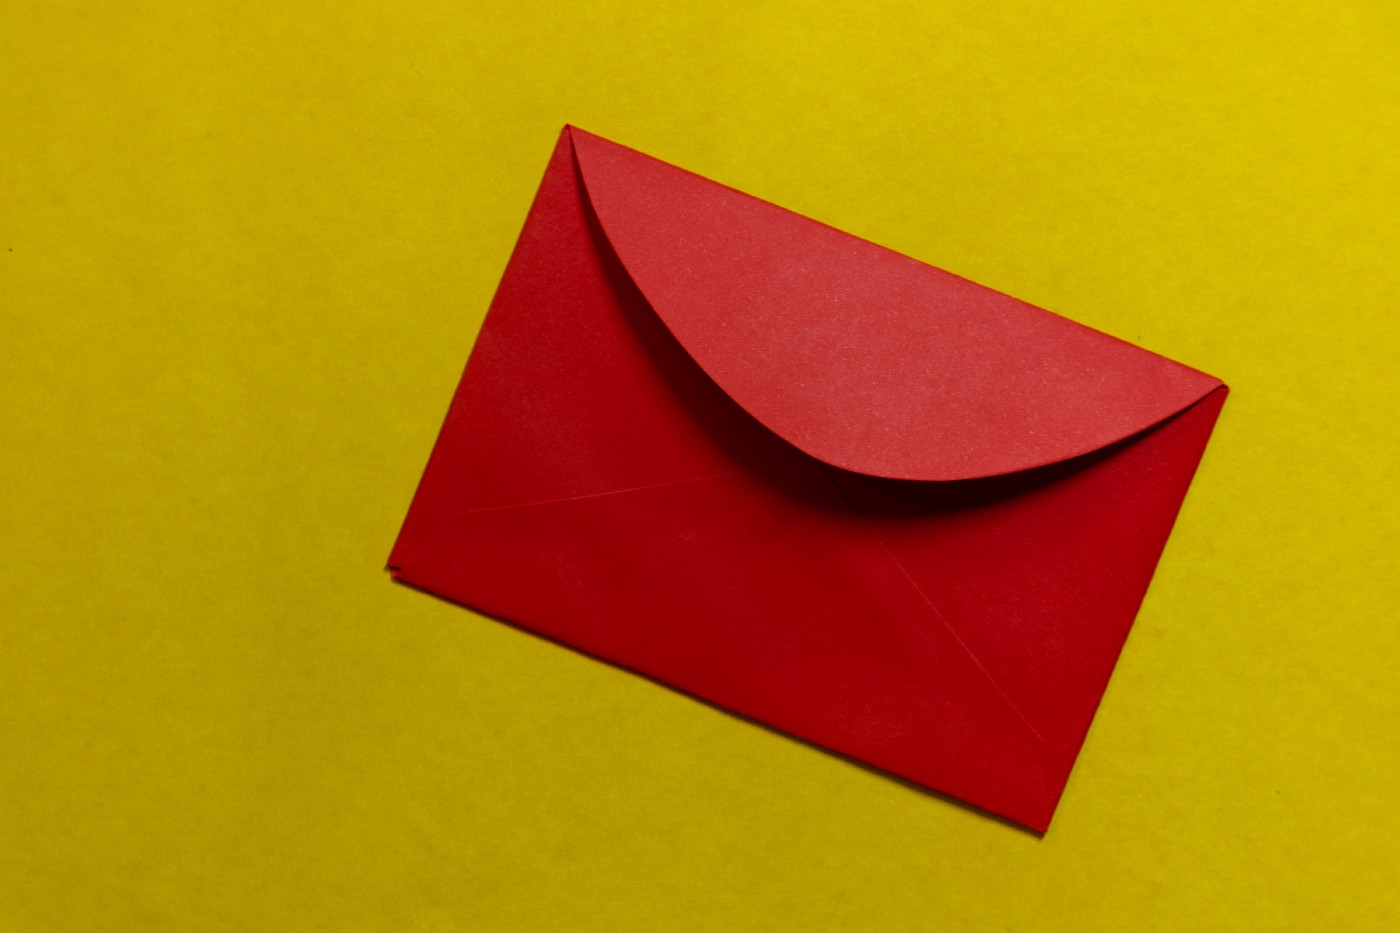 Red Envelope | Photo by Lucas George Wendt